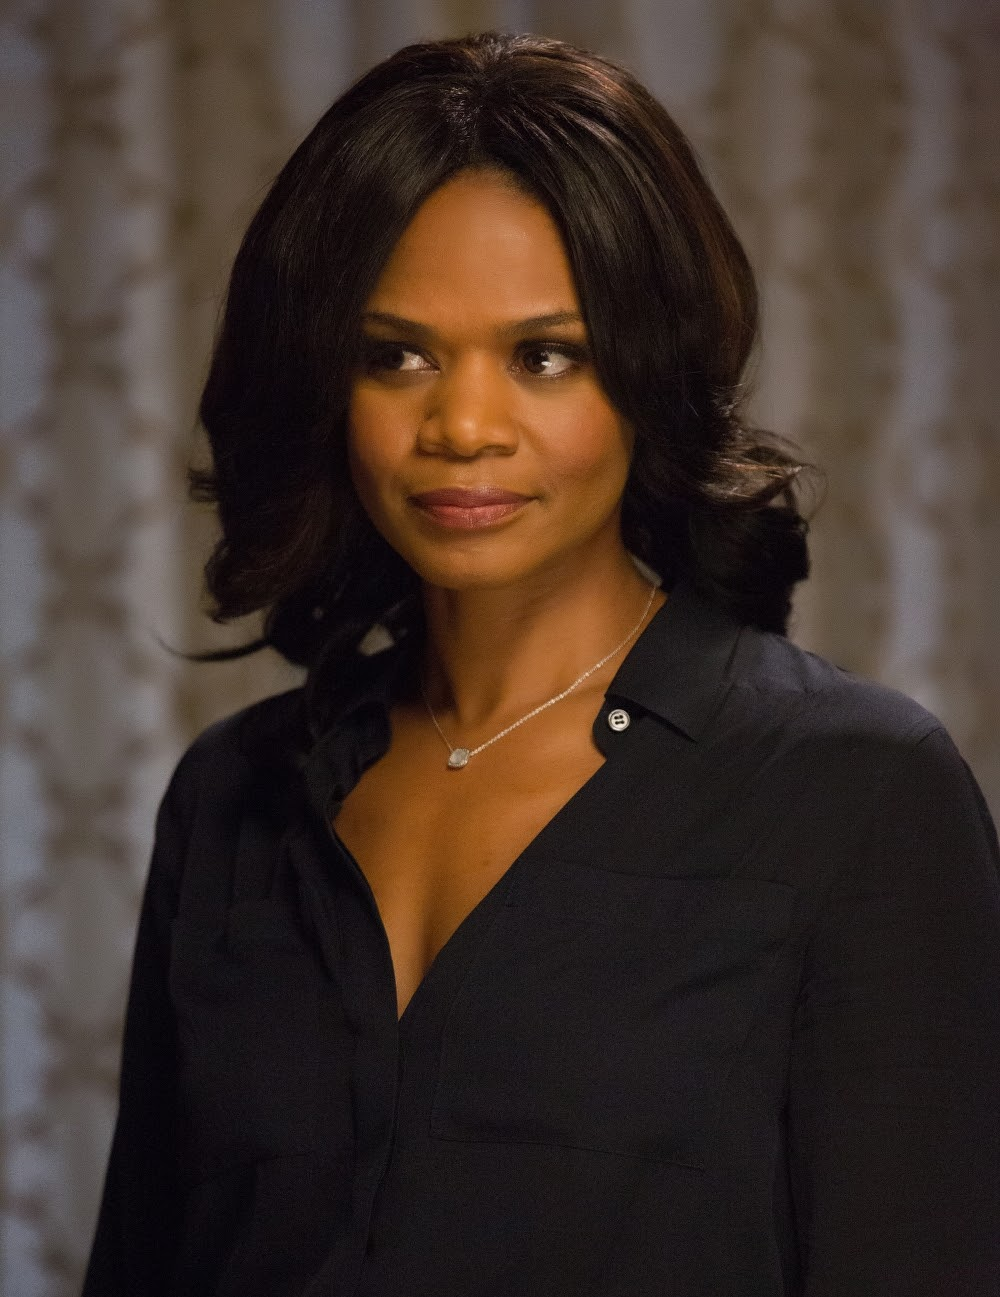 Kimberly Elise in ALMOST CHRISTMAS. (Photo by Quantrell D. Colbert / courtesy of Universal Pictures).